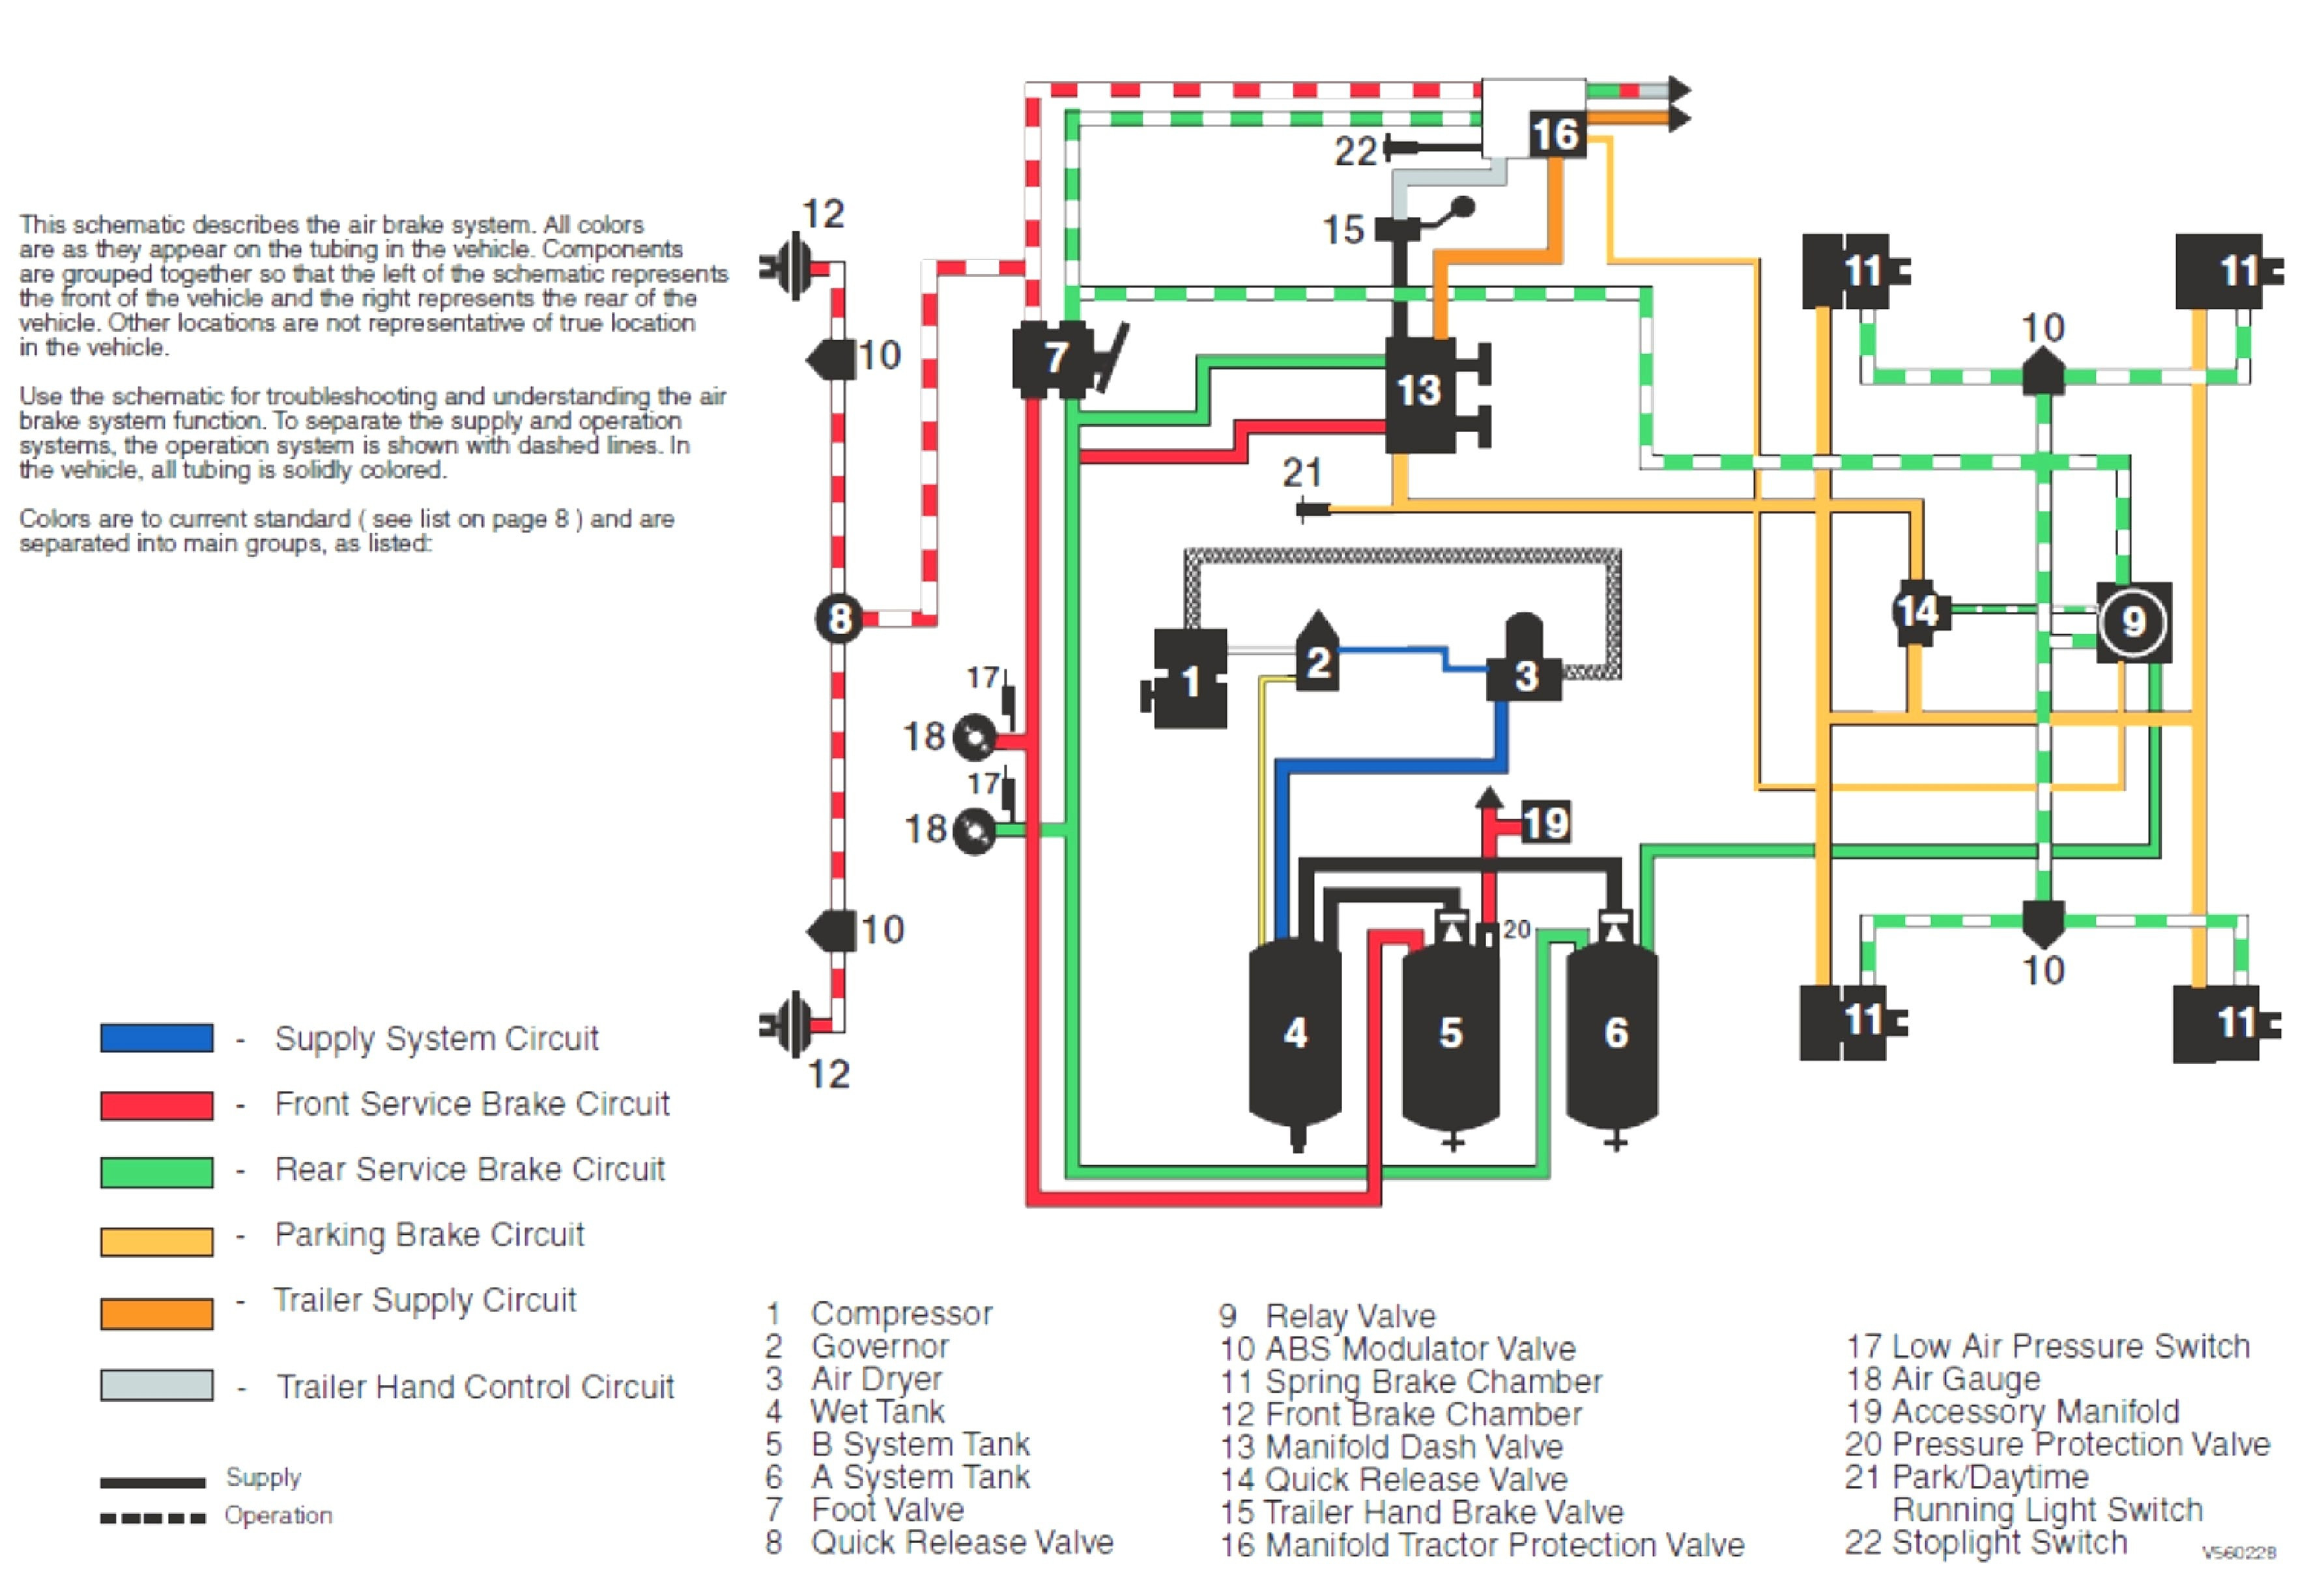 Featherlite Trailers Wiring Diagram | Manual E-Books - Featherlite Trailer Wiring Diagram